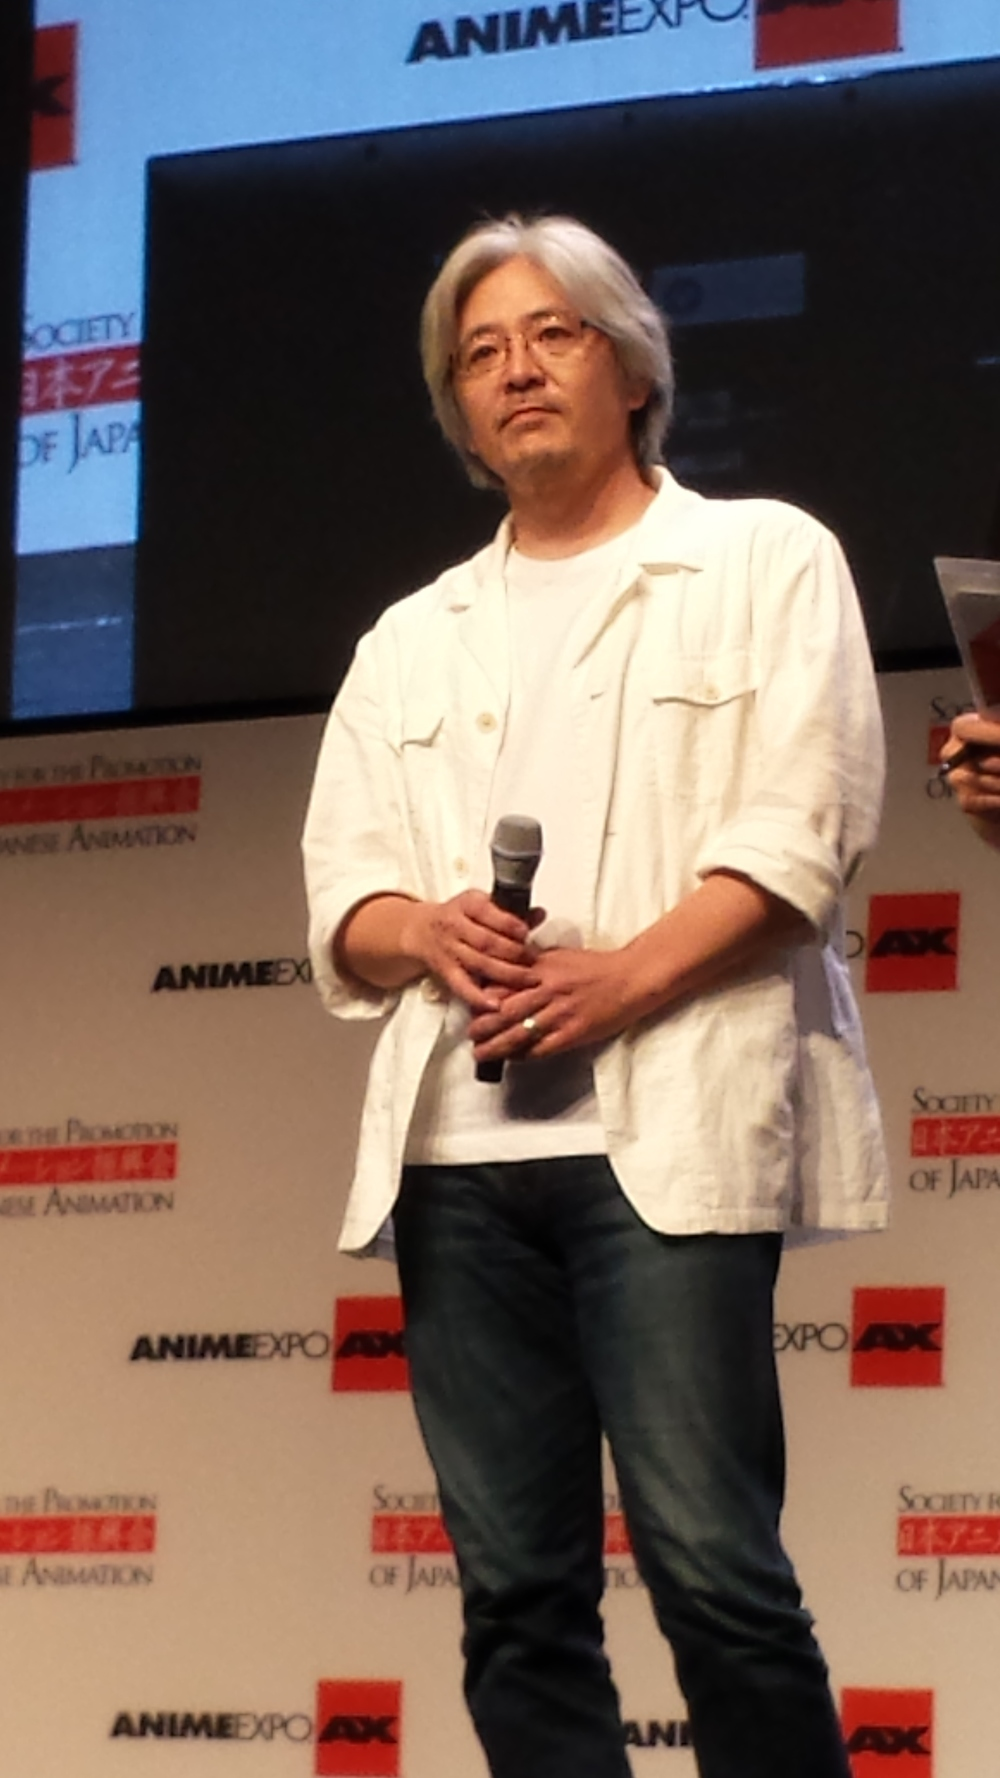 AnimeExpo 2013 - Kazuchika Kise at closing ceremonies